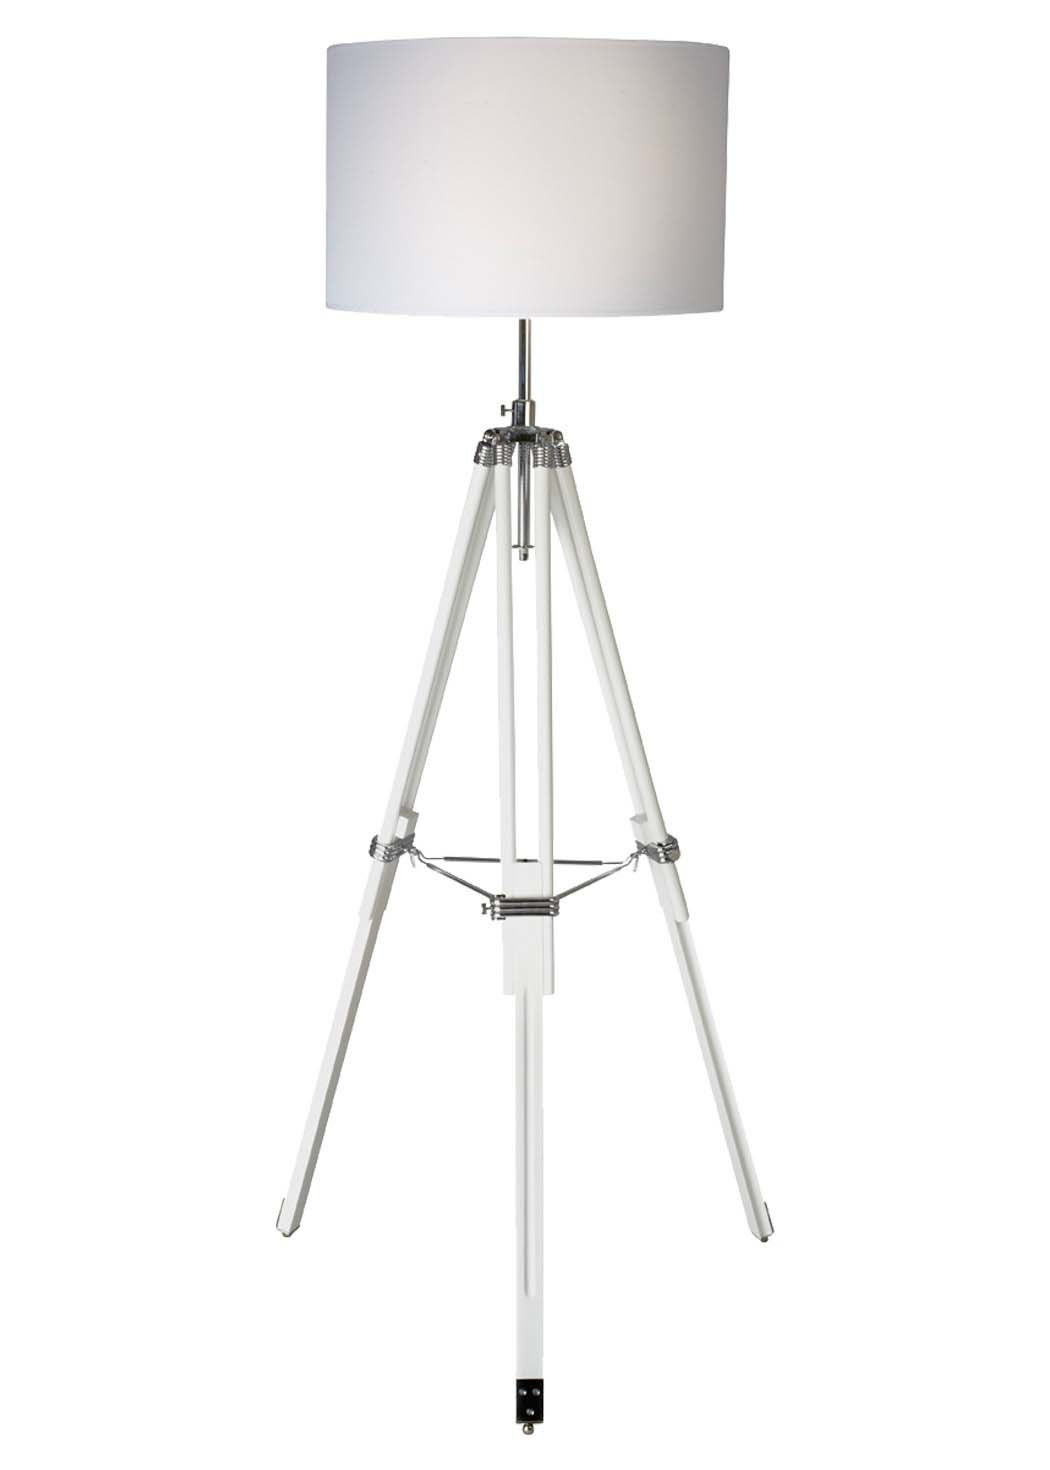 Surveyor Tripod | Tripod Lamp | Arc Lamp Crate and Barrel